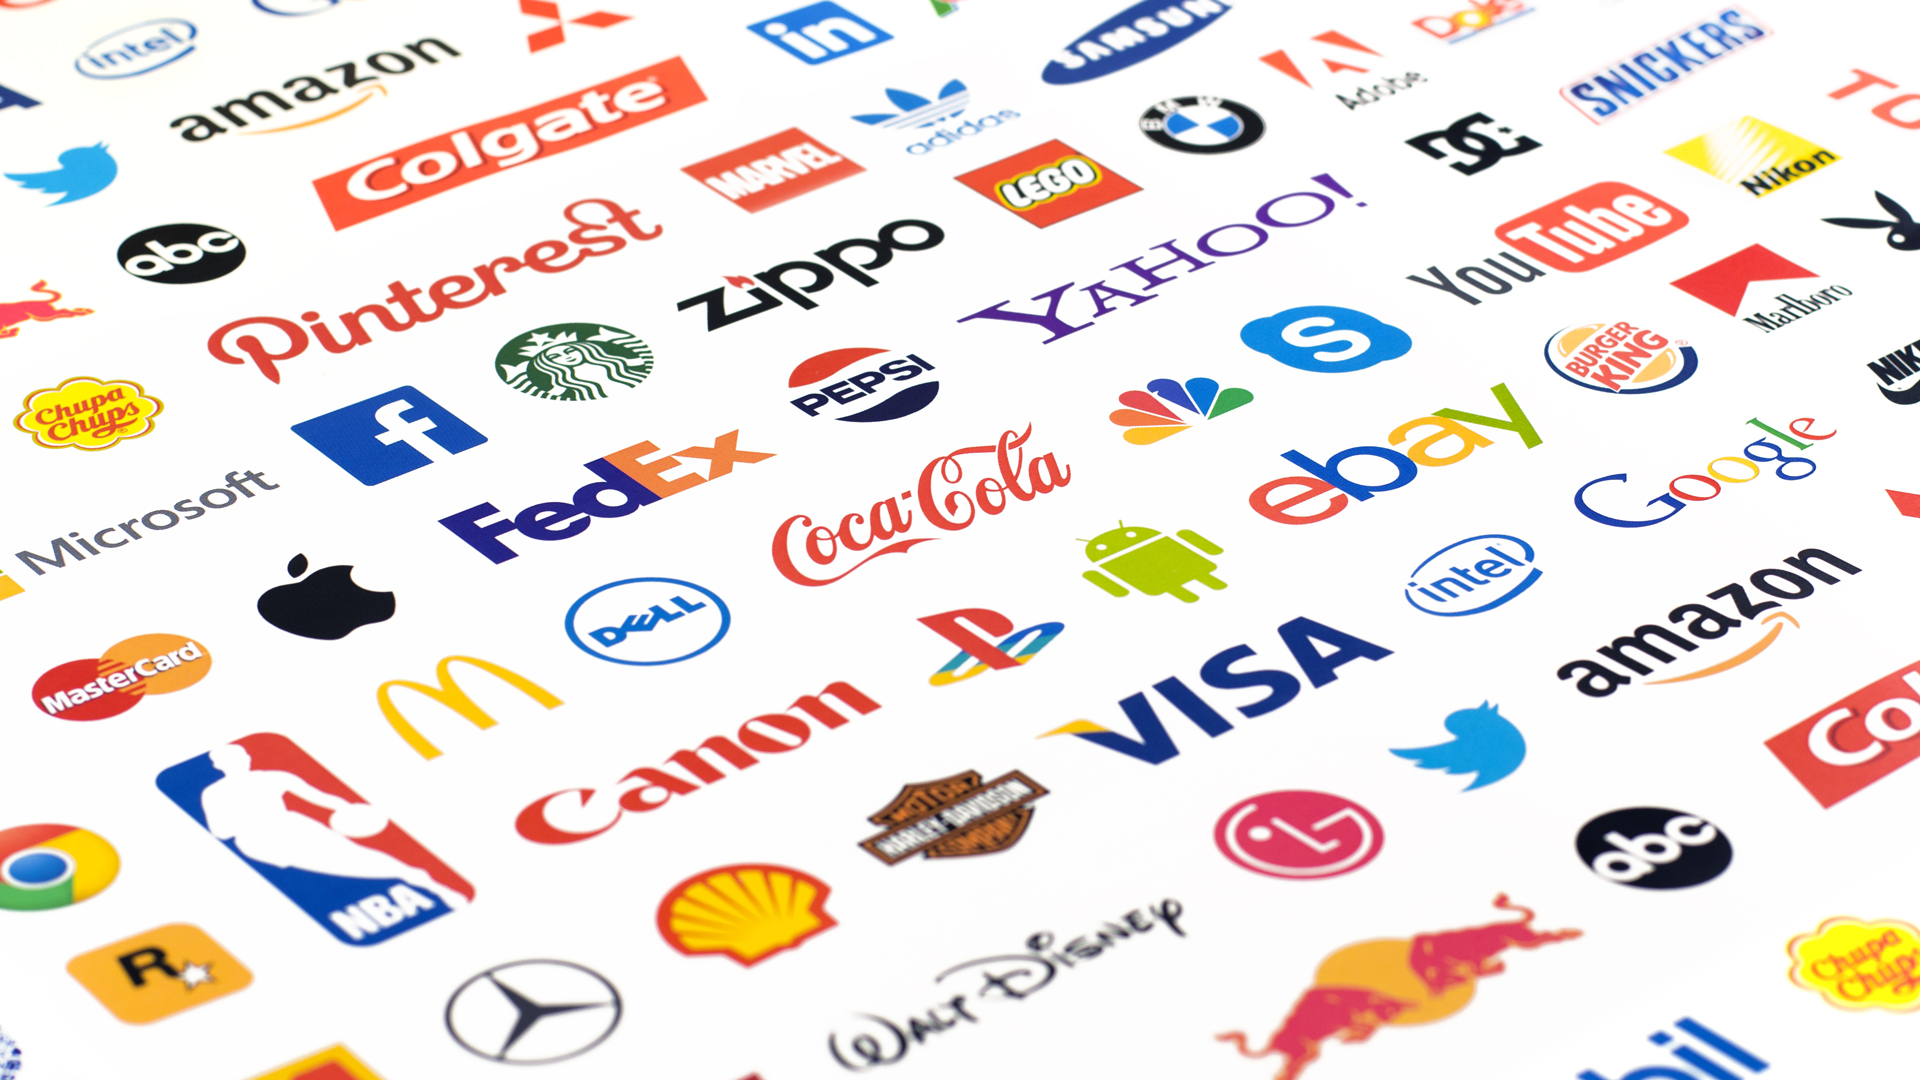 What does Brand Personality mean?